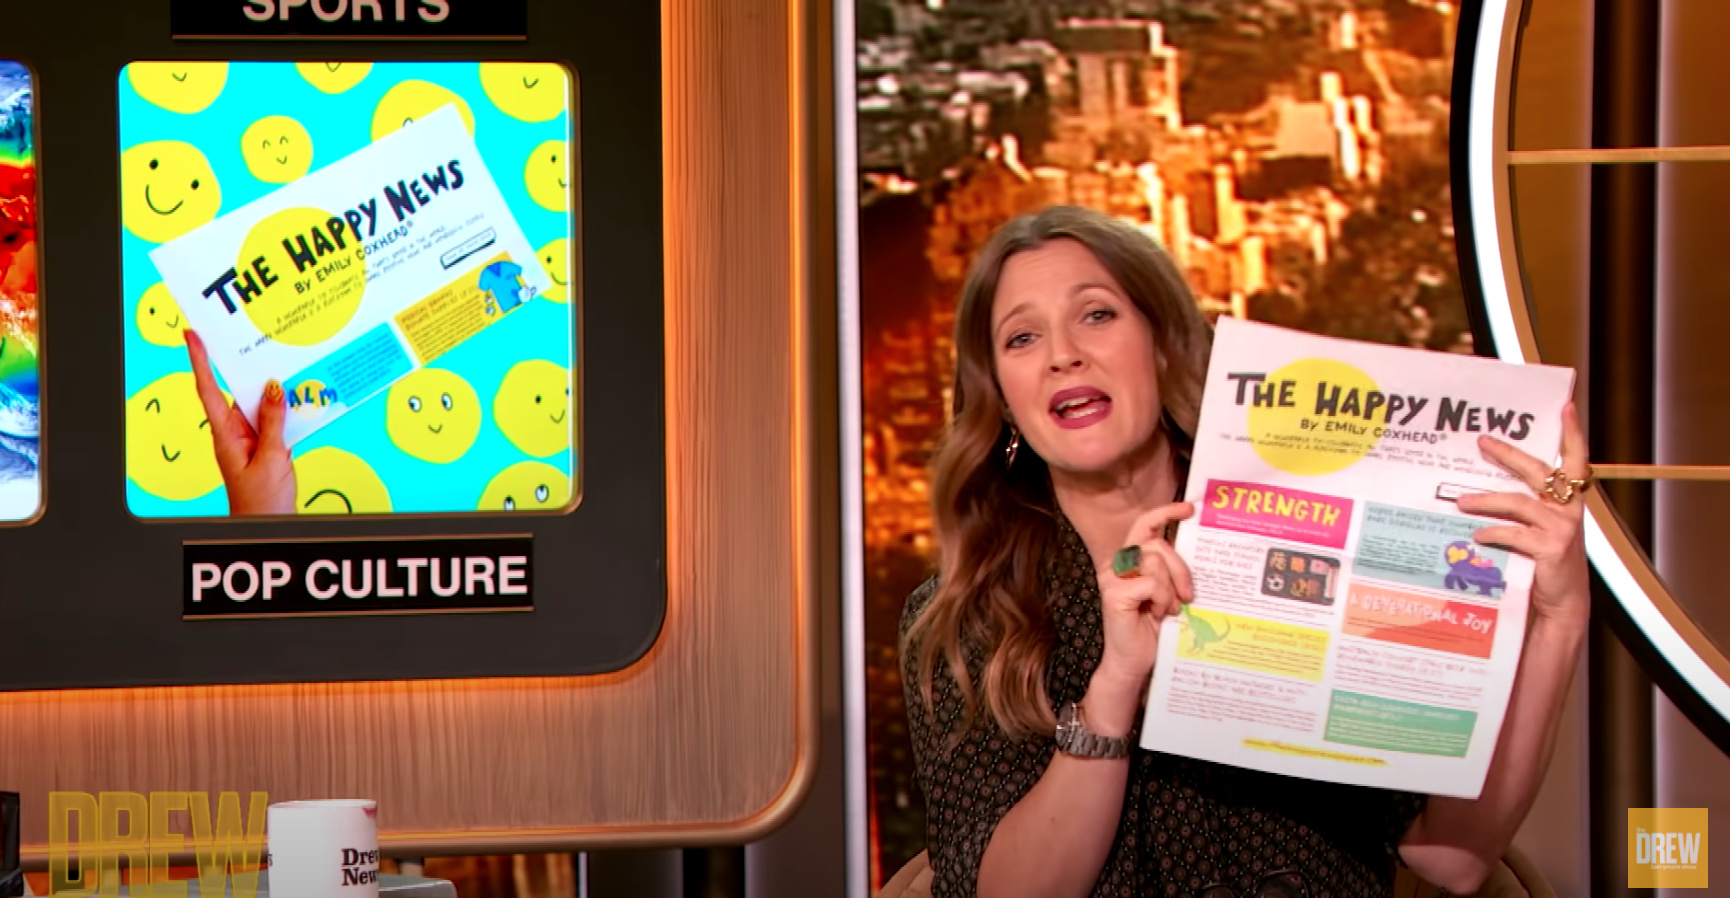 Above: Drew Barrymore extoling the virtues of The Happy News on a recent episode of The Drew Barrymore Show.